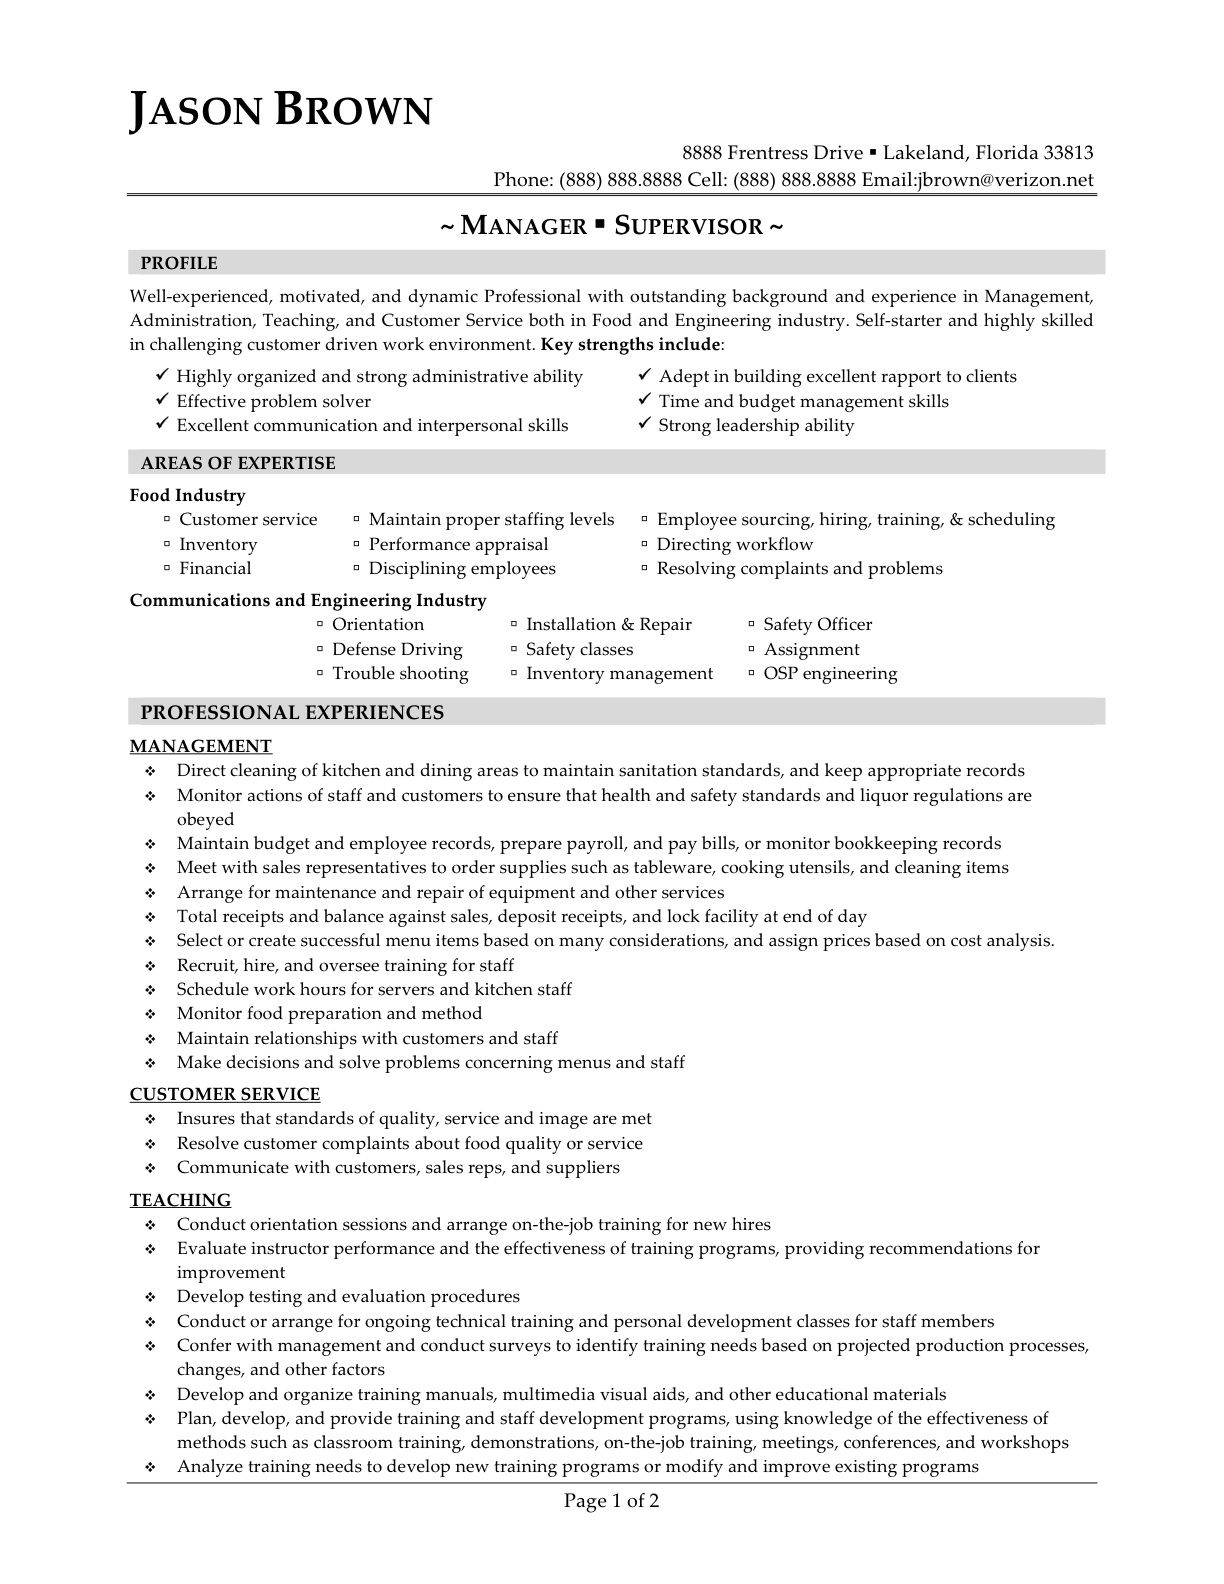 Supervisor Resume Sample Free Call Center Supervisor Resume Sample,  Customer Service Supervisor Resume Sample,